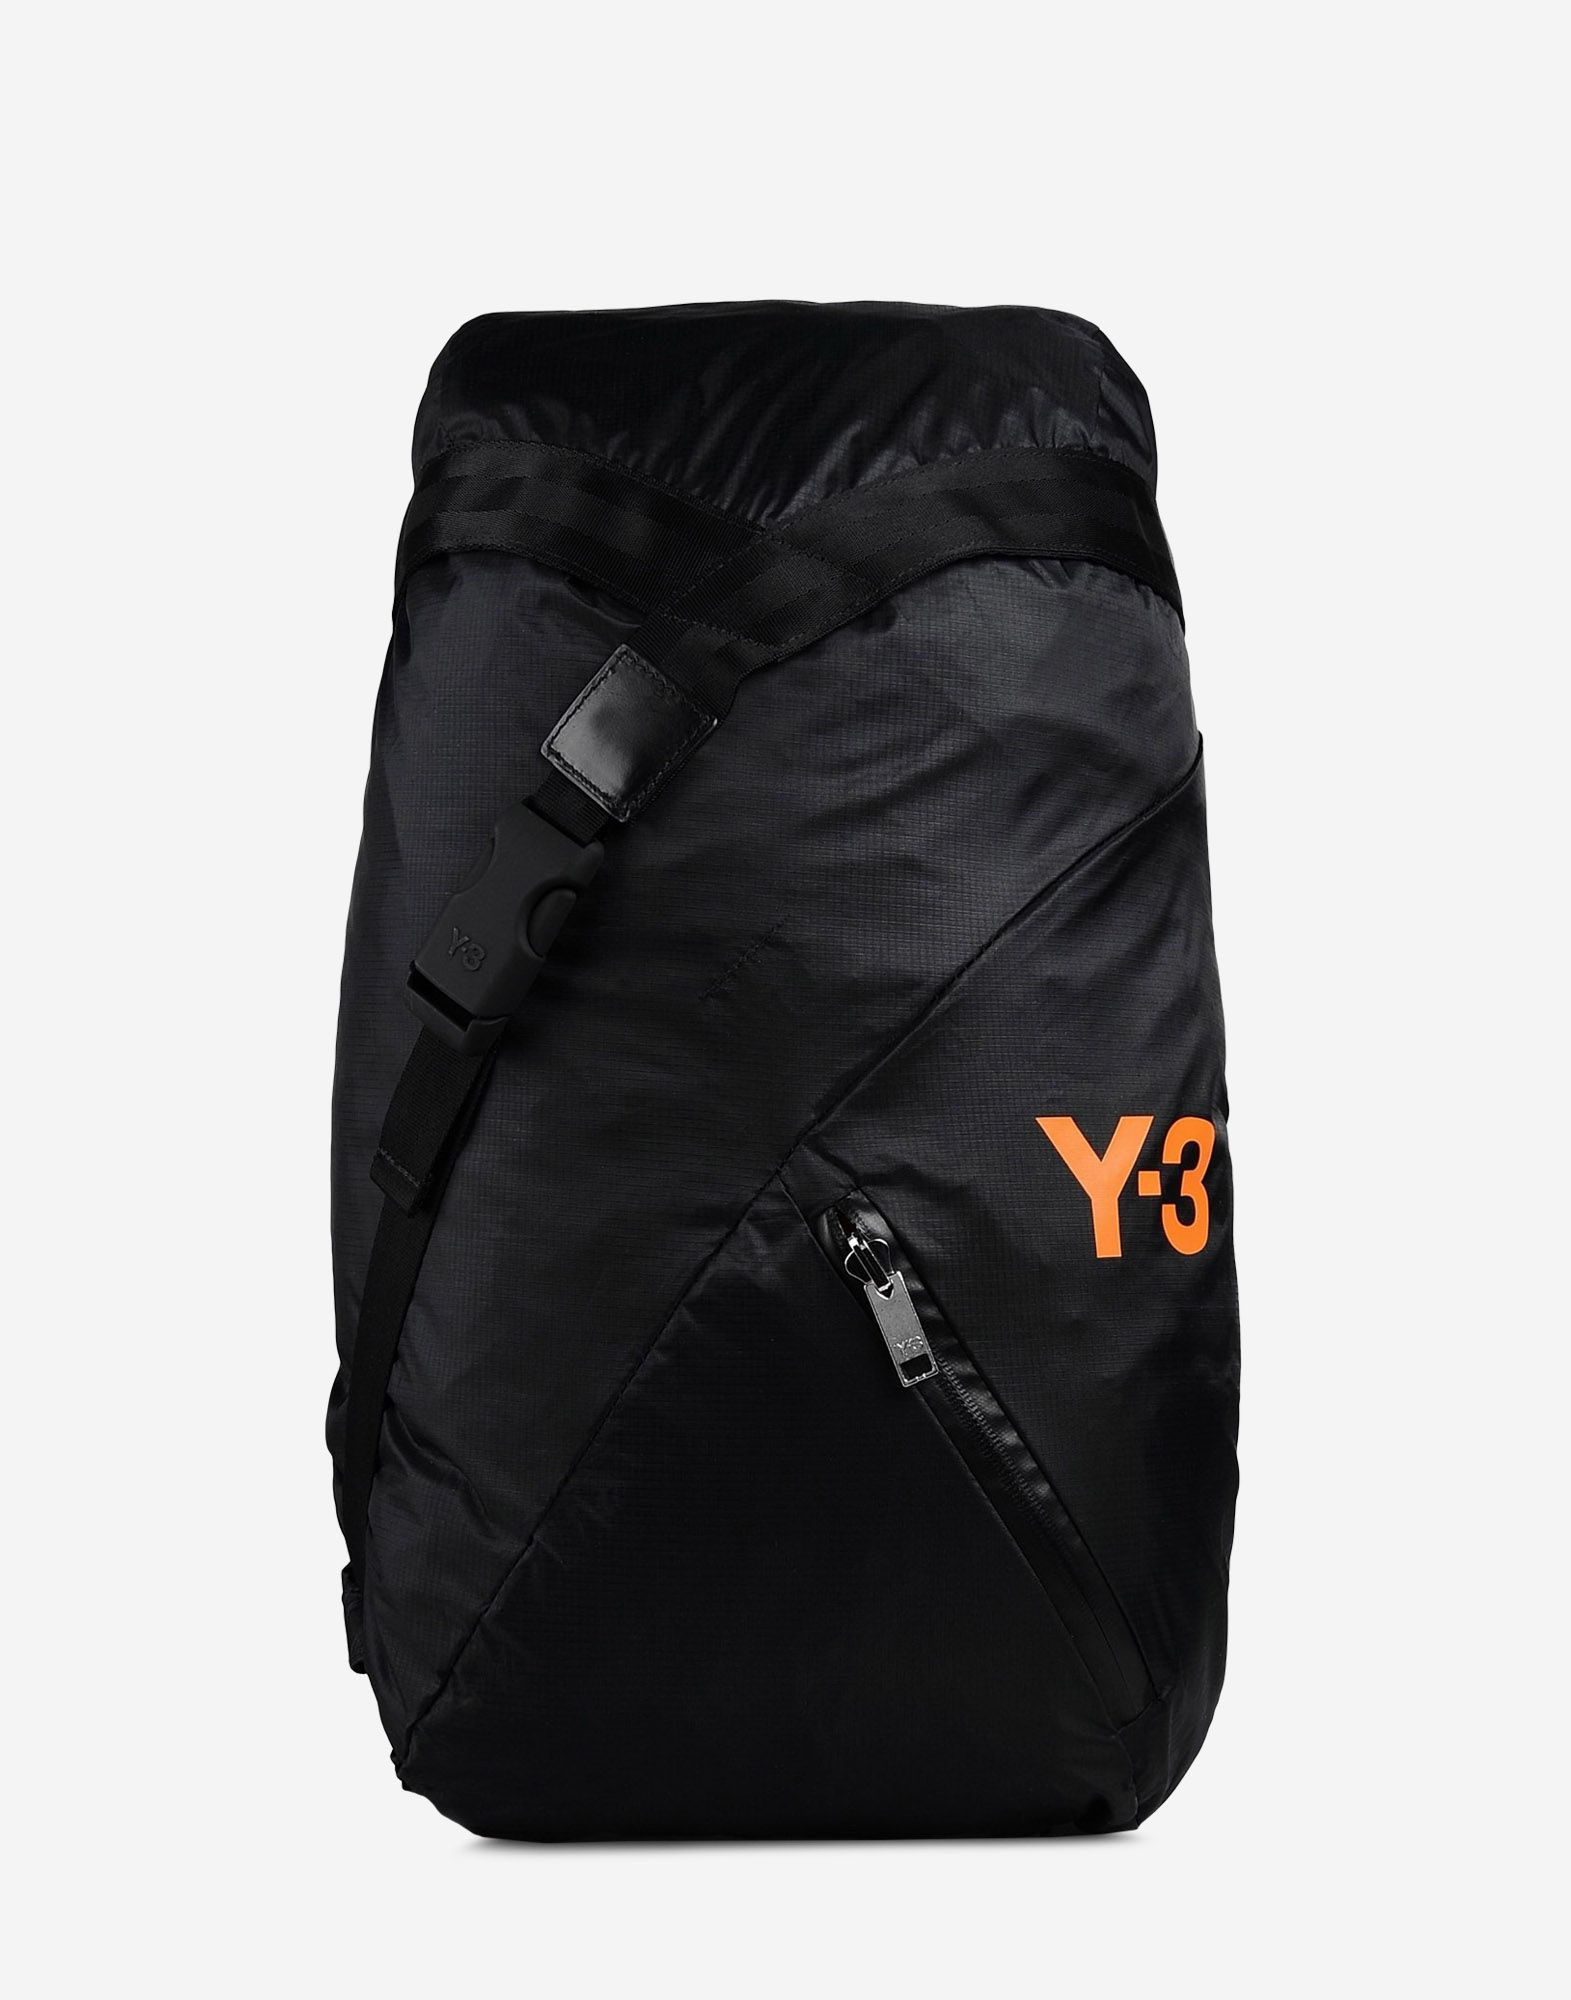 Y 3 FS Pack Backpack Backpacks   Adidas Y-3 Official Site 41b0463e5c